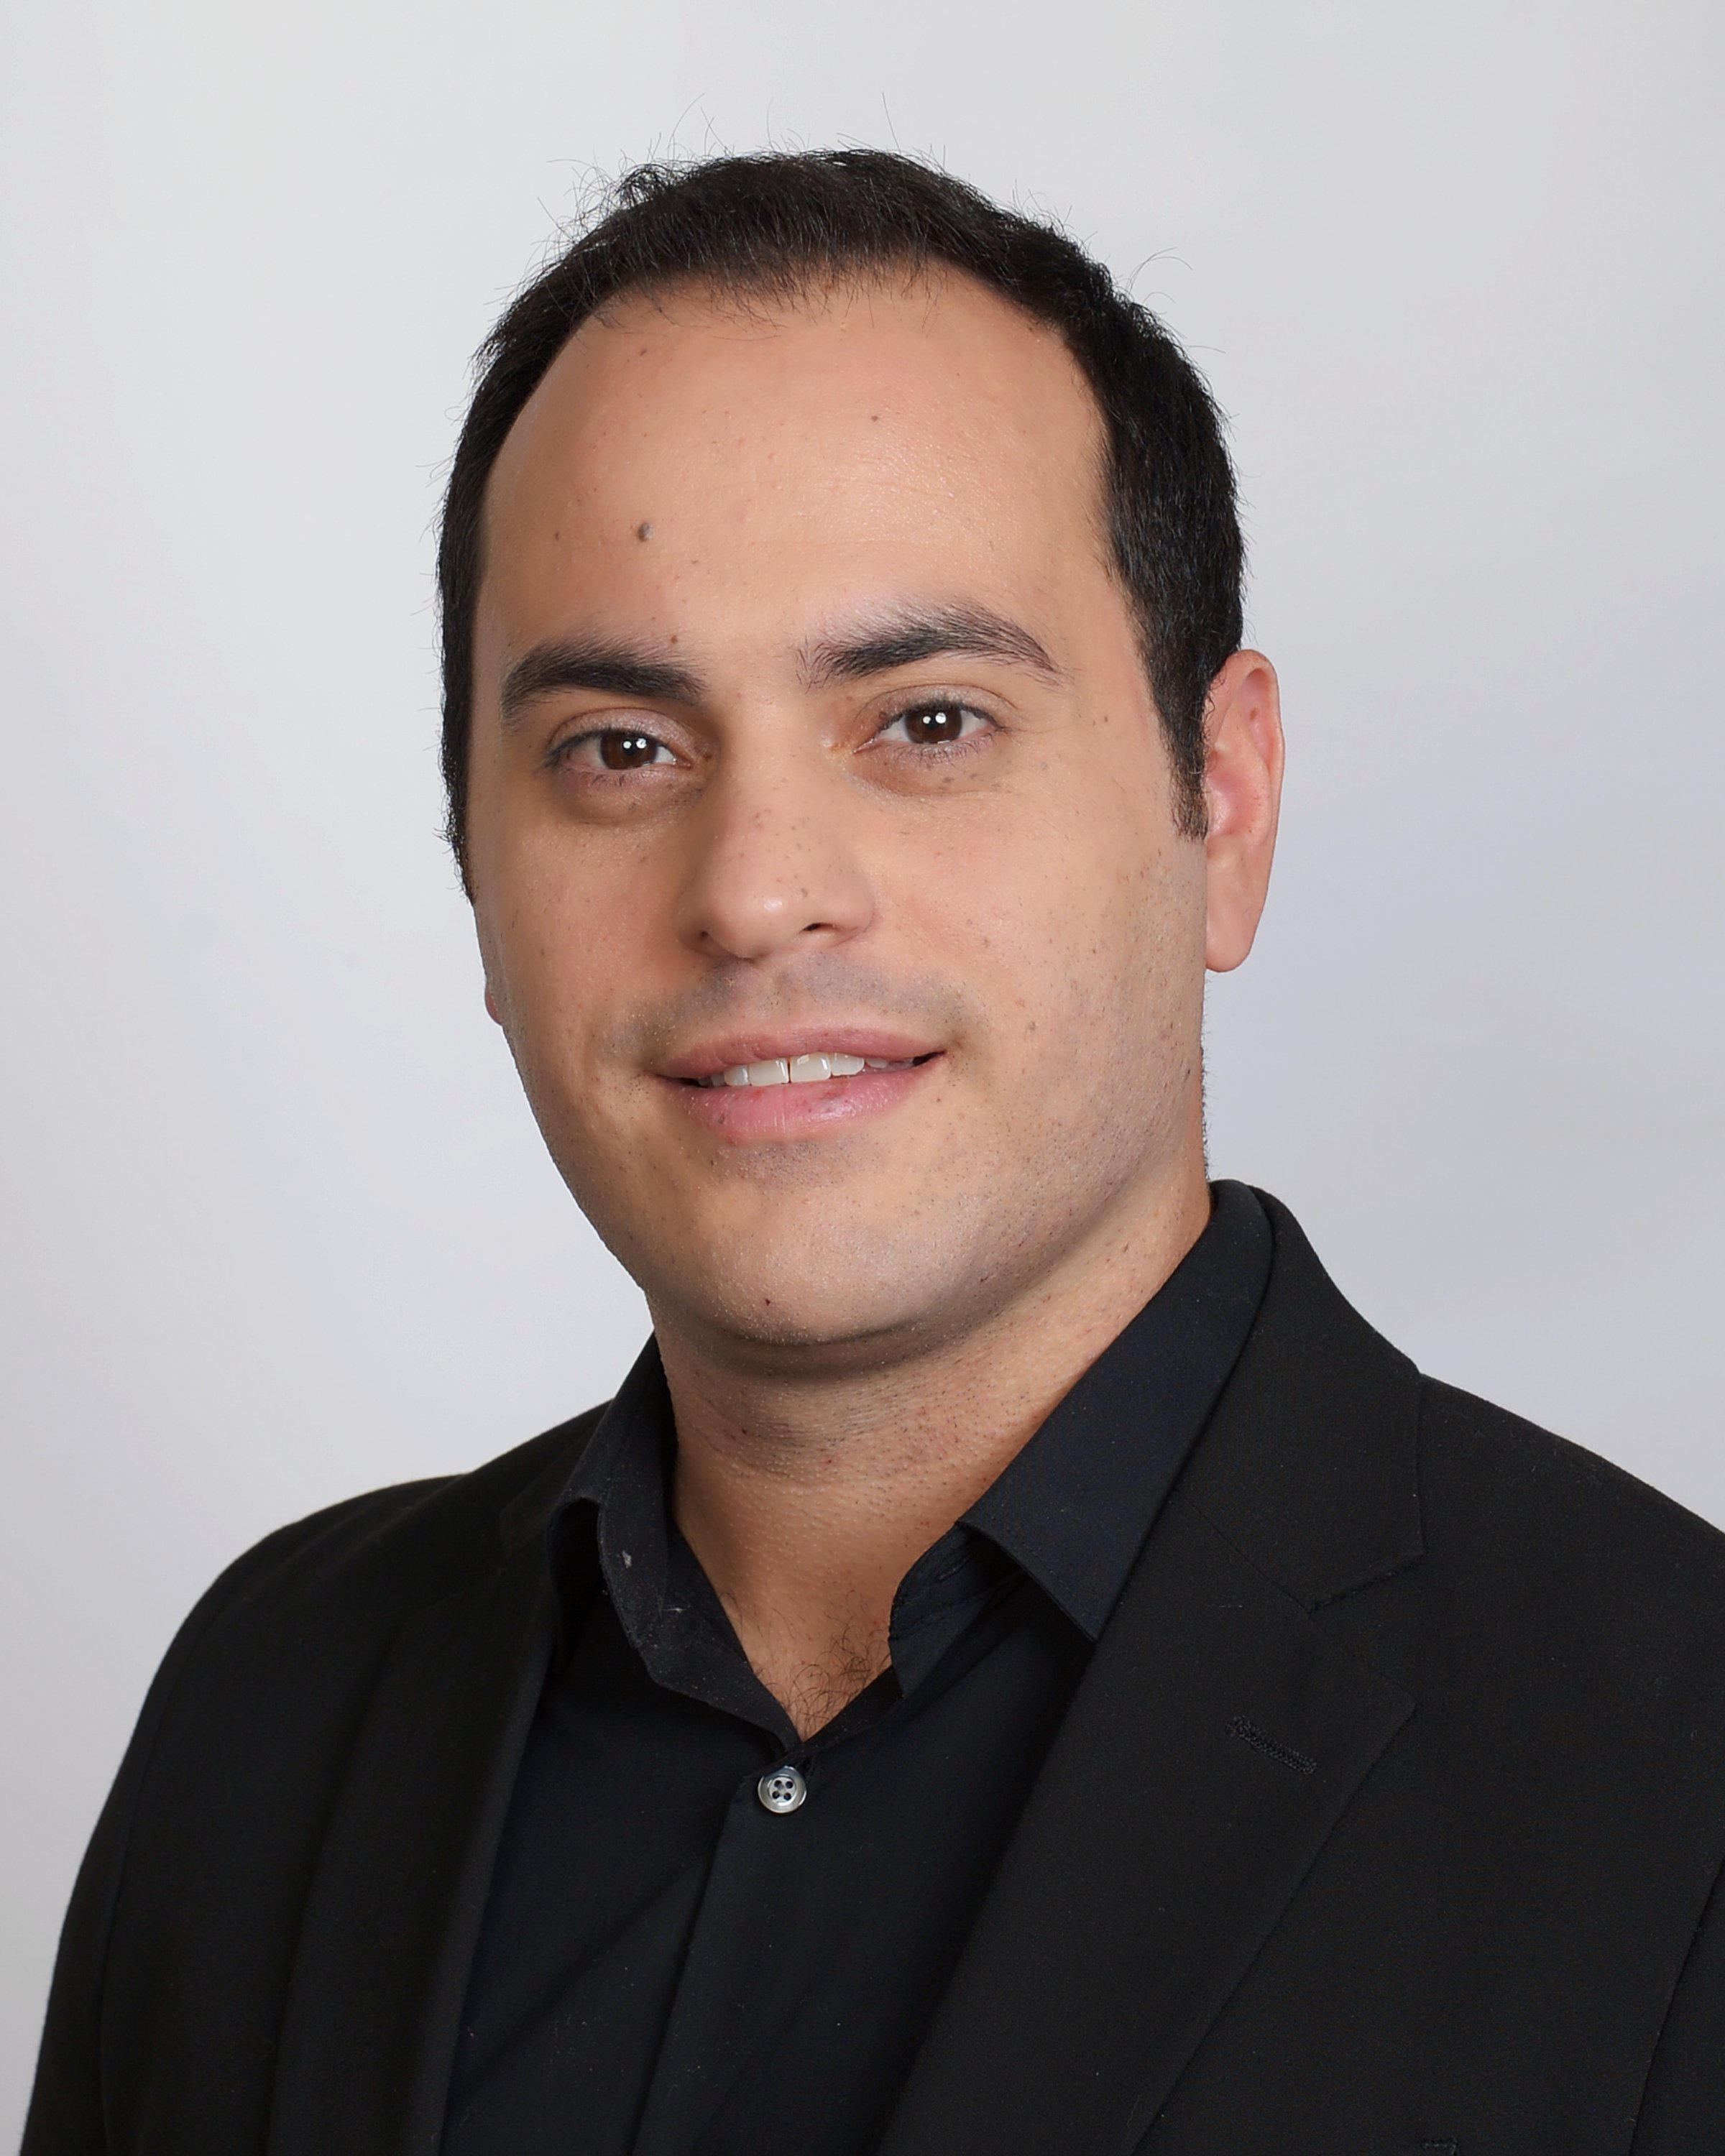 Board nc physical therapy - Daniel Pagan B S Dpt Is A Board Certified Physical Therapist With Over 5 Years Of Experience Working With Orthopedic And Neurological Cases